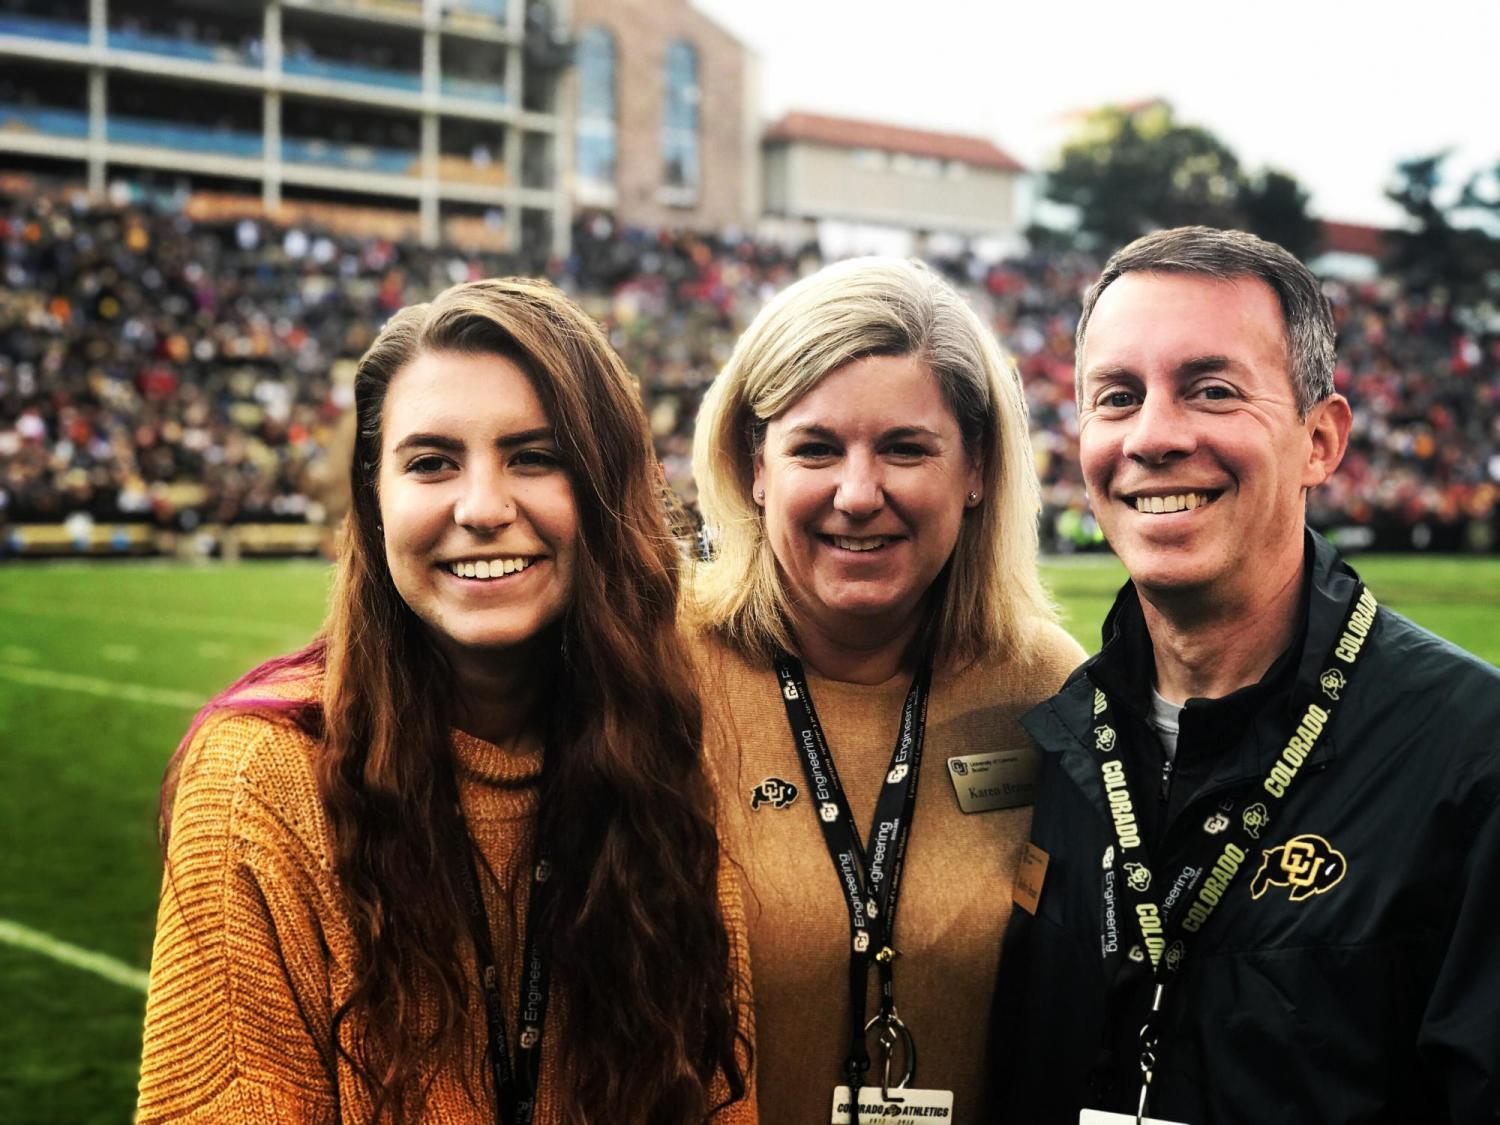 CU Boulder's Dean of Engineering and Applied Science Bobby Braun, his wife Karen, and his daughter attend a CU football game in the fall of 2018.